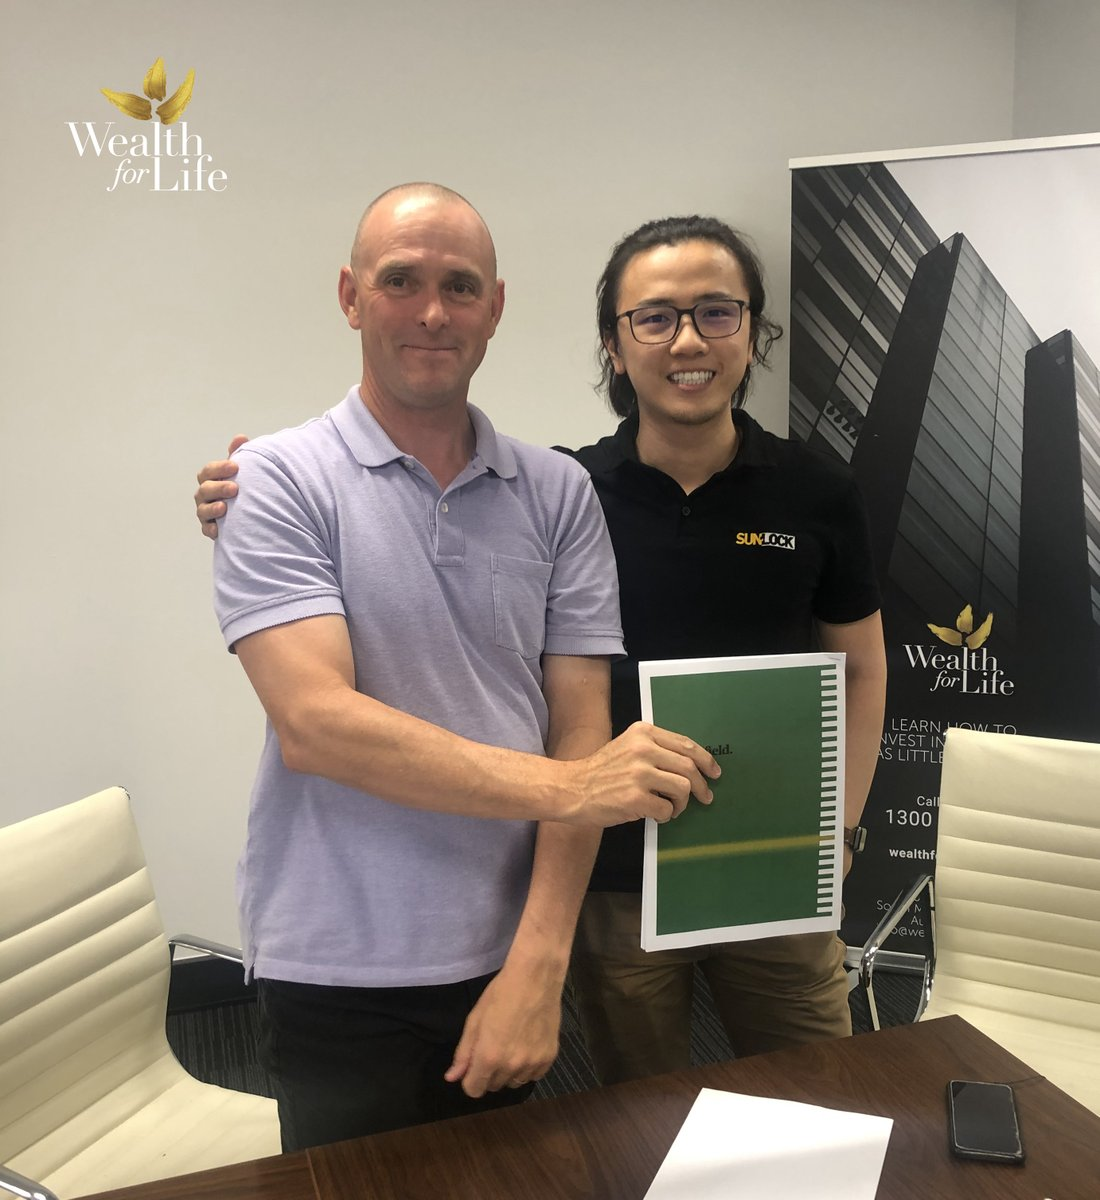 Congratulations Samson on picking up a spectacular opportunity and joining the wealth for life team.   To find out more head over to our website    #2021goals #wealthforlife #property #propertyinvestment #financialfreedom #finance #2021herewecome